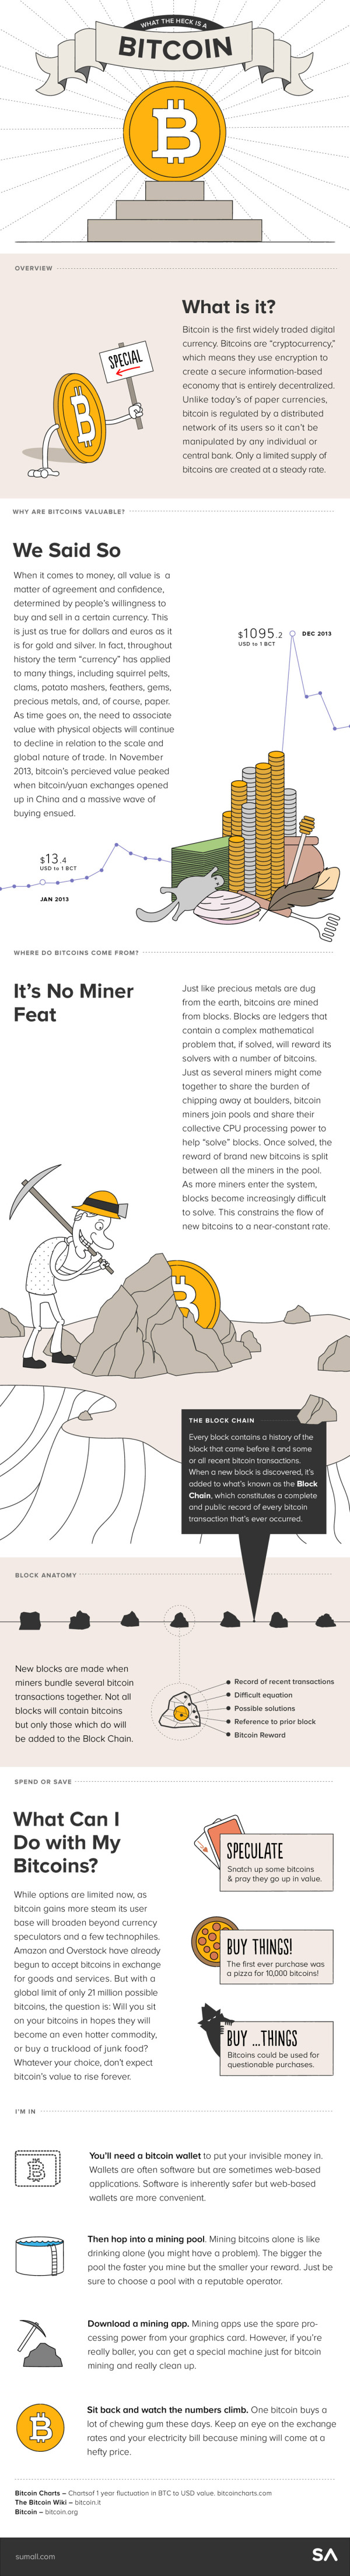 What the Heck is a Bitcoin infographic